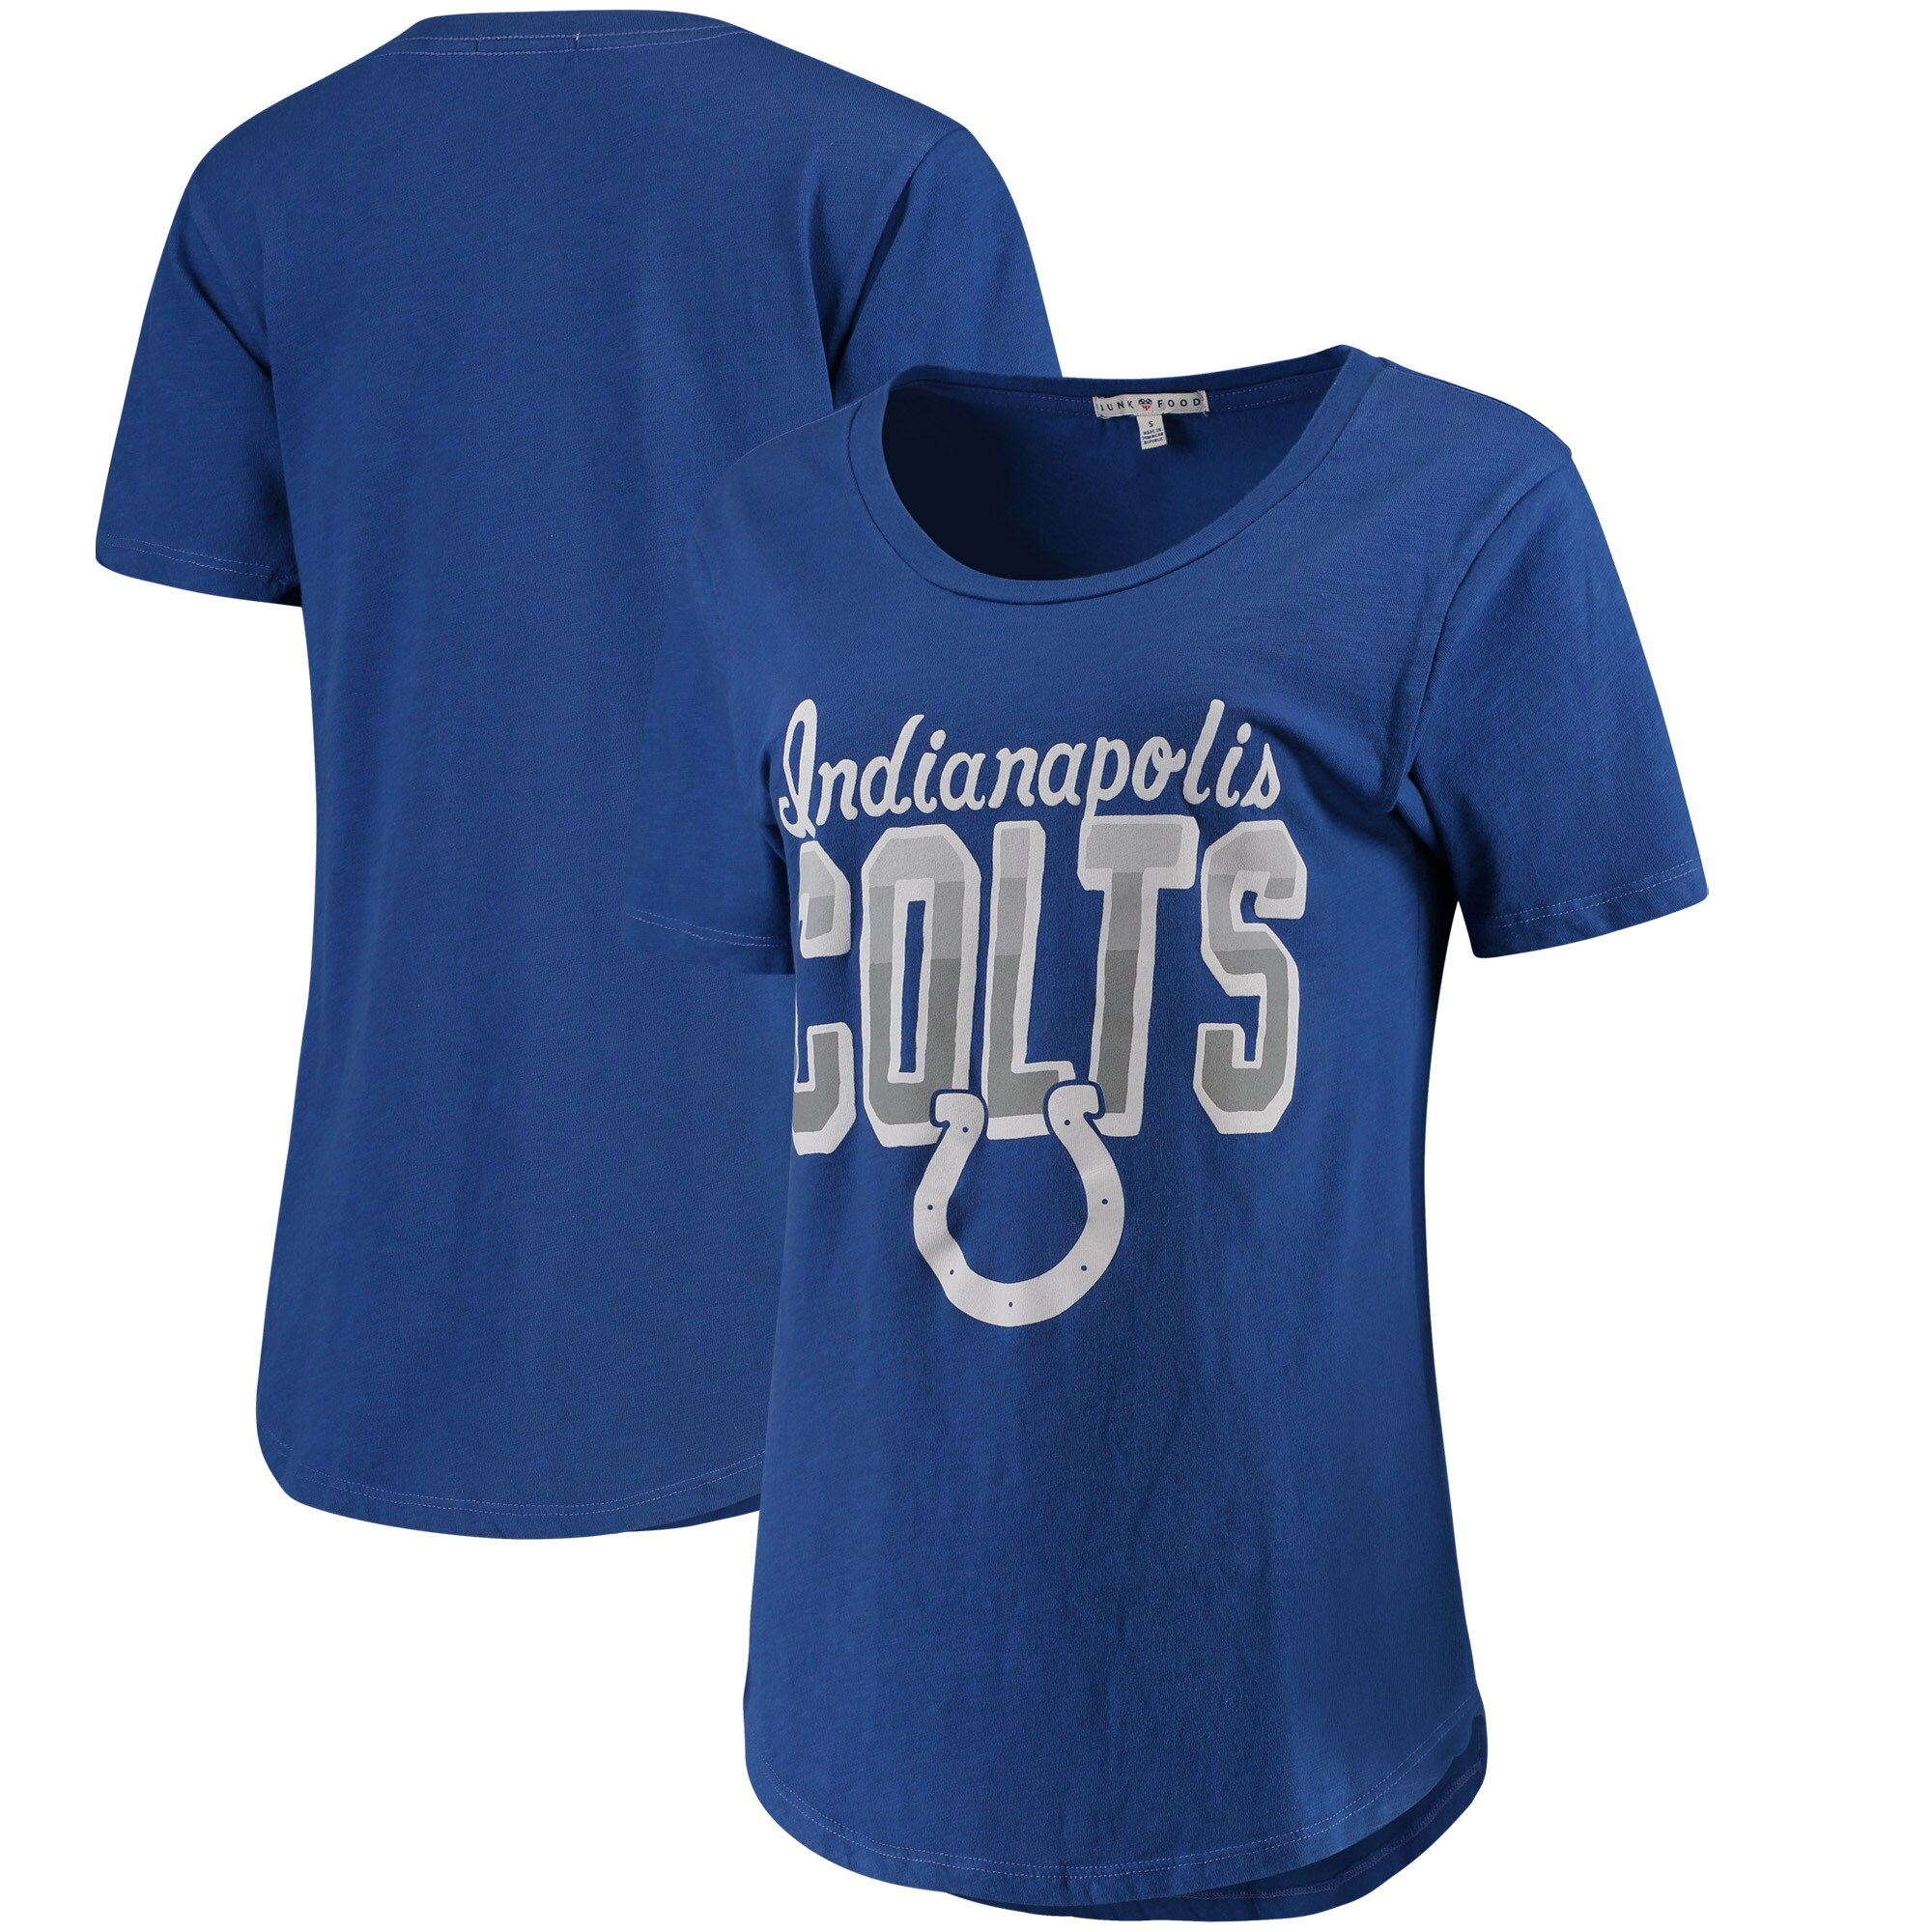 Indianapolis Colts Junk Food Women's Game Time T-Shirt - Royal